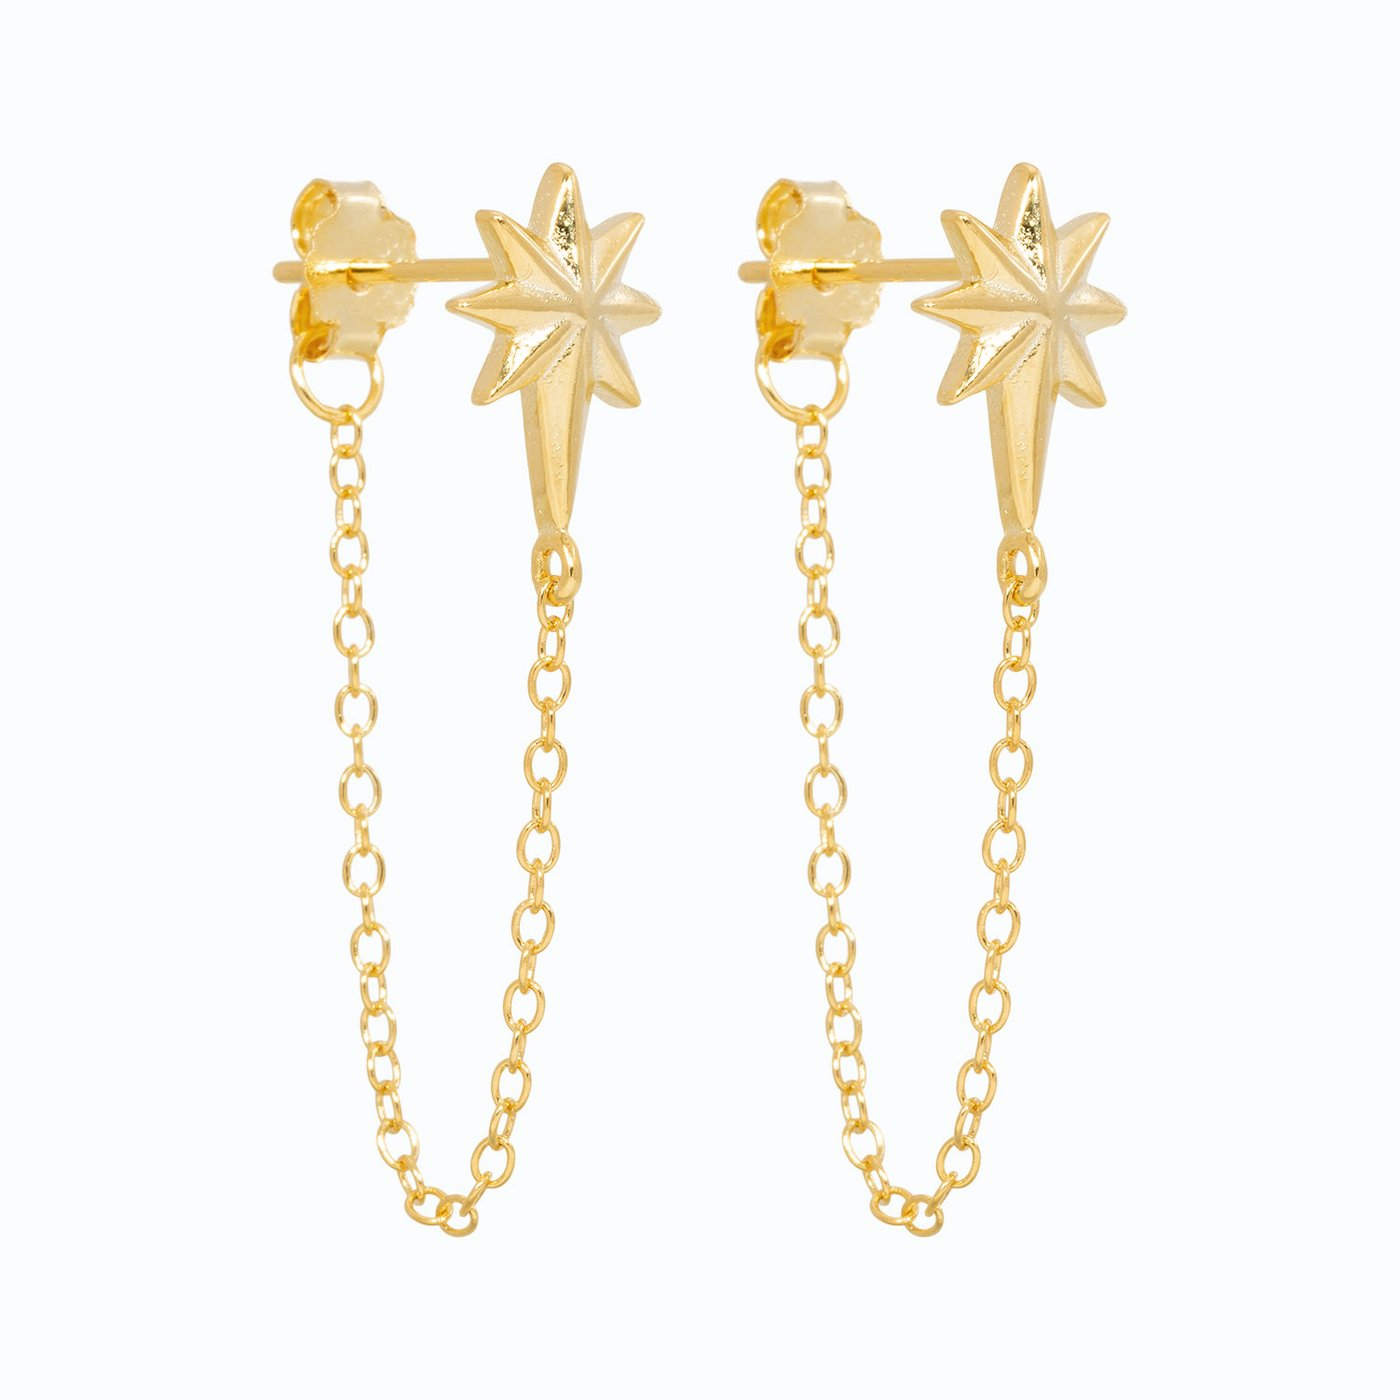 Lillys Amsterdam Star Chain Earrings